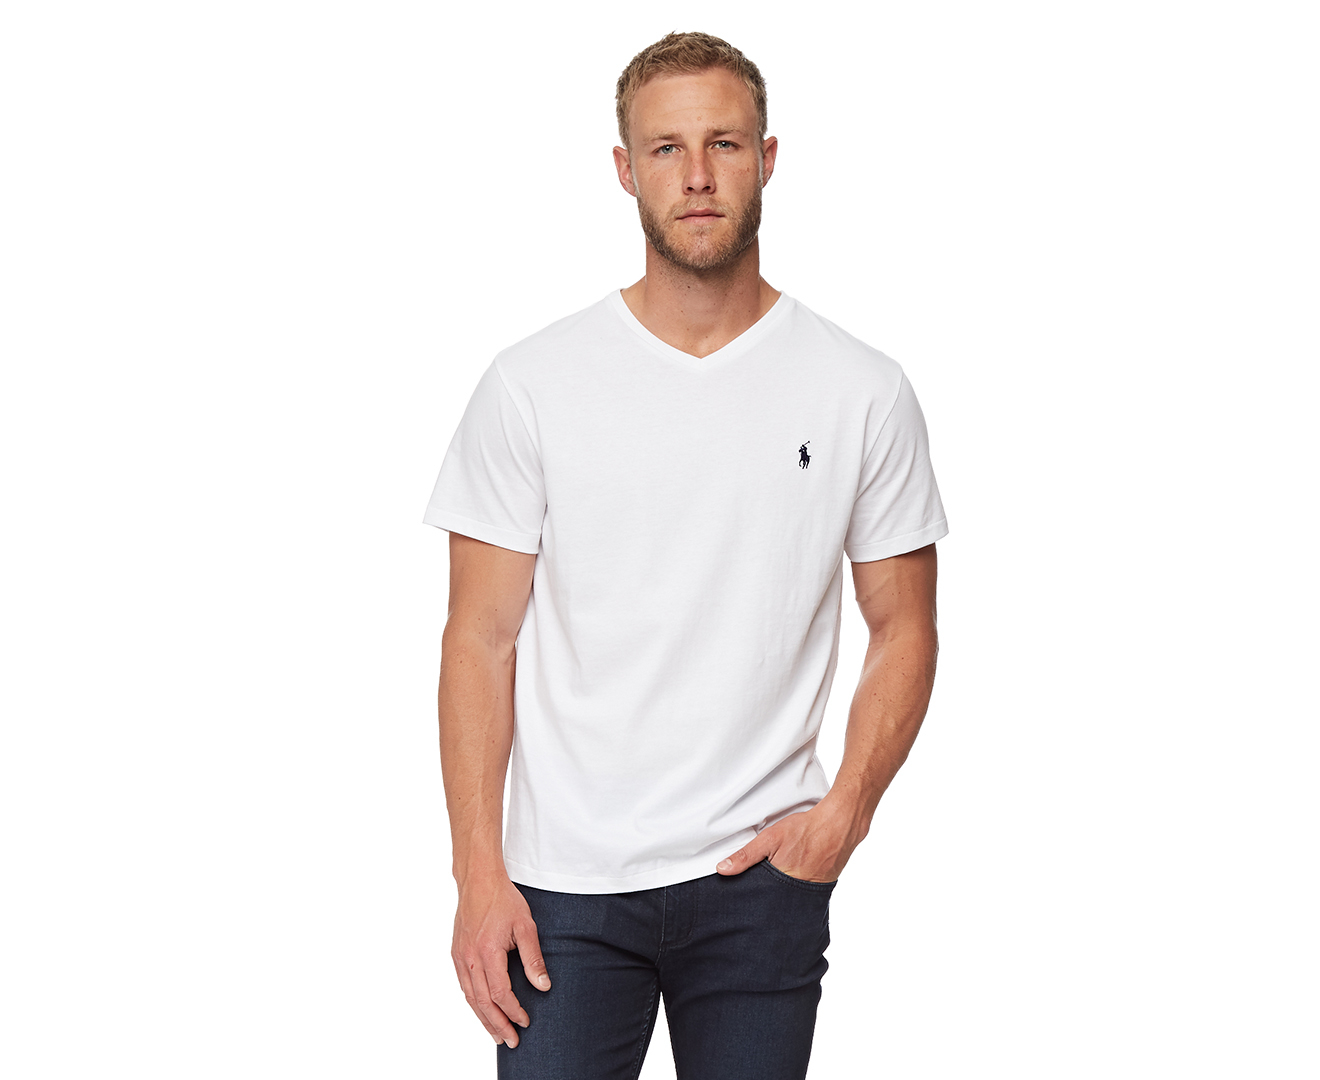 6125f21c1c Details about Polo Ralph Lauren Men's V-Neck Tee - White